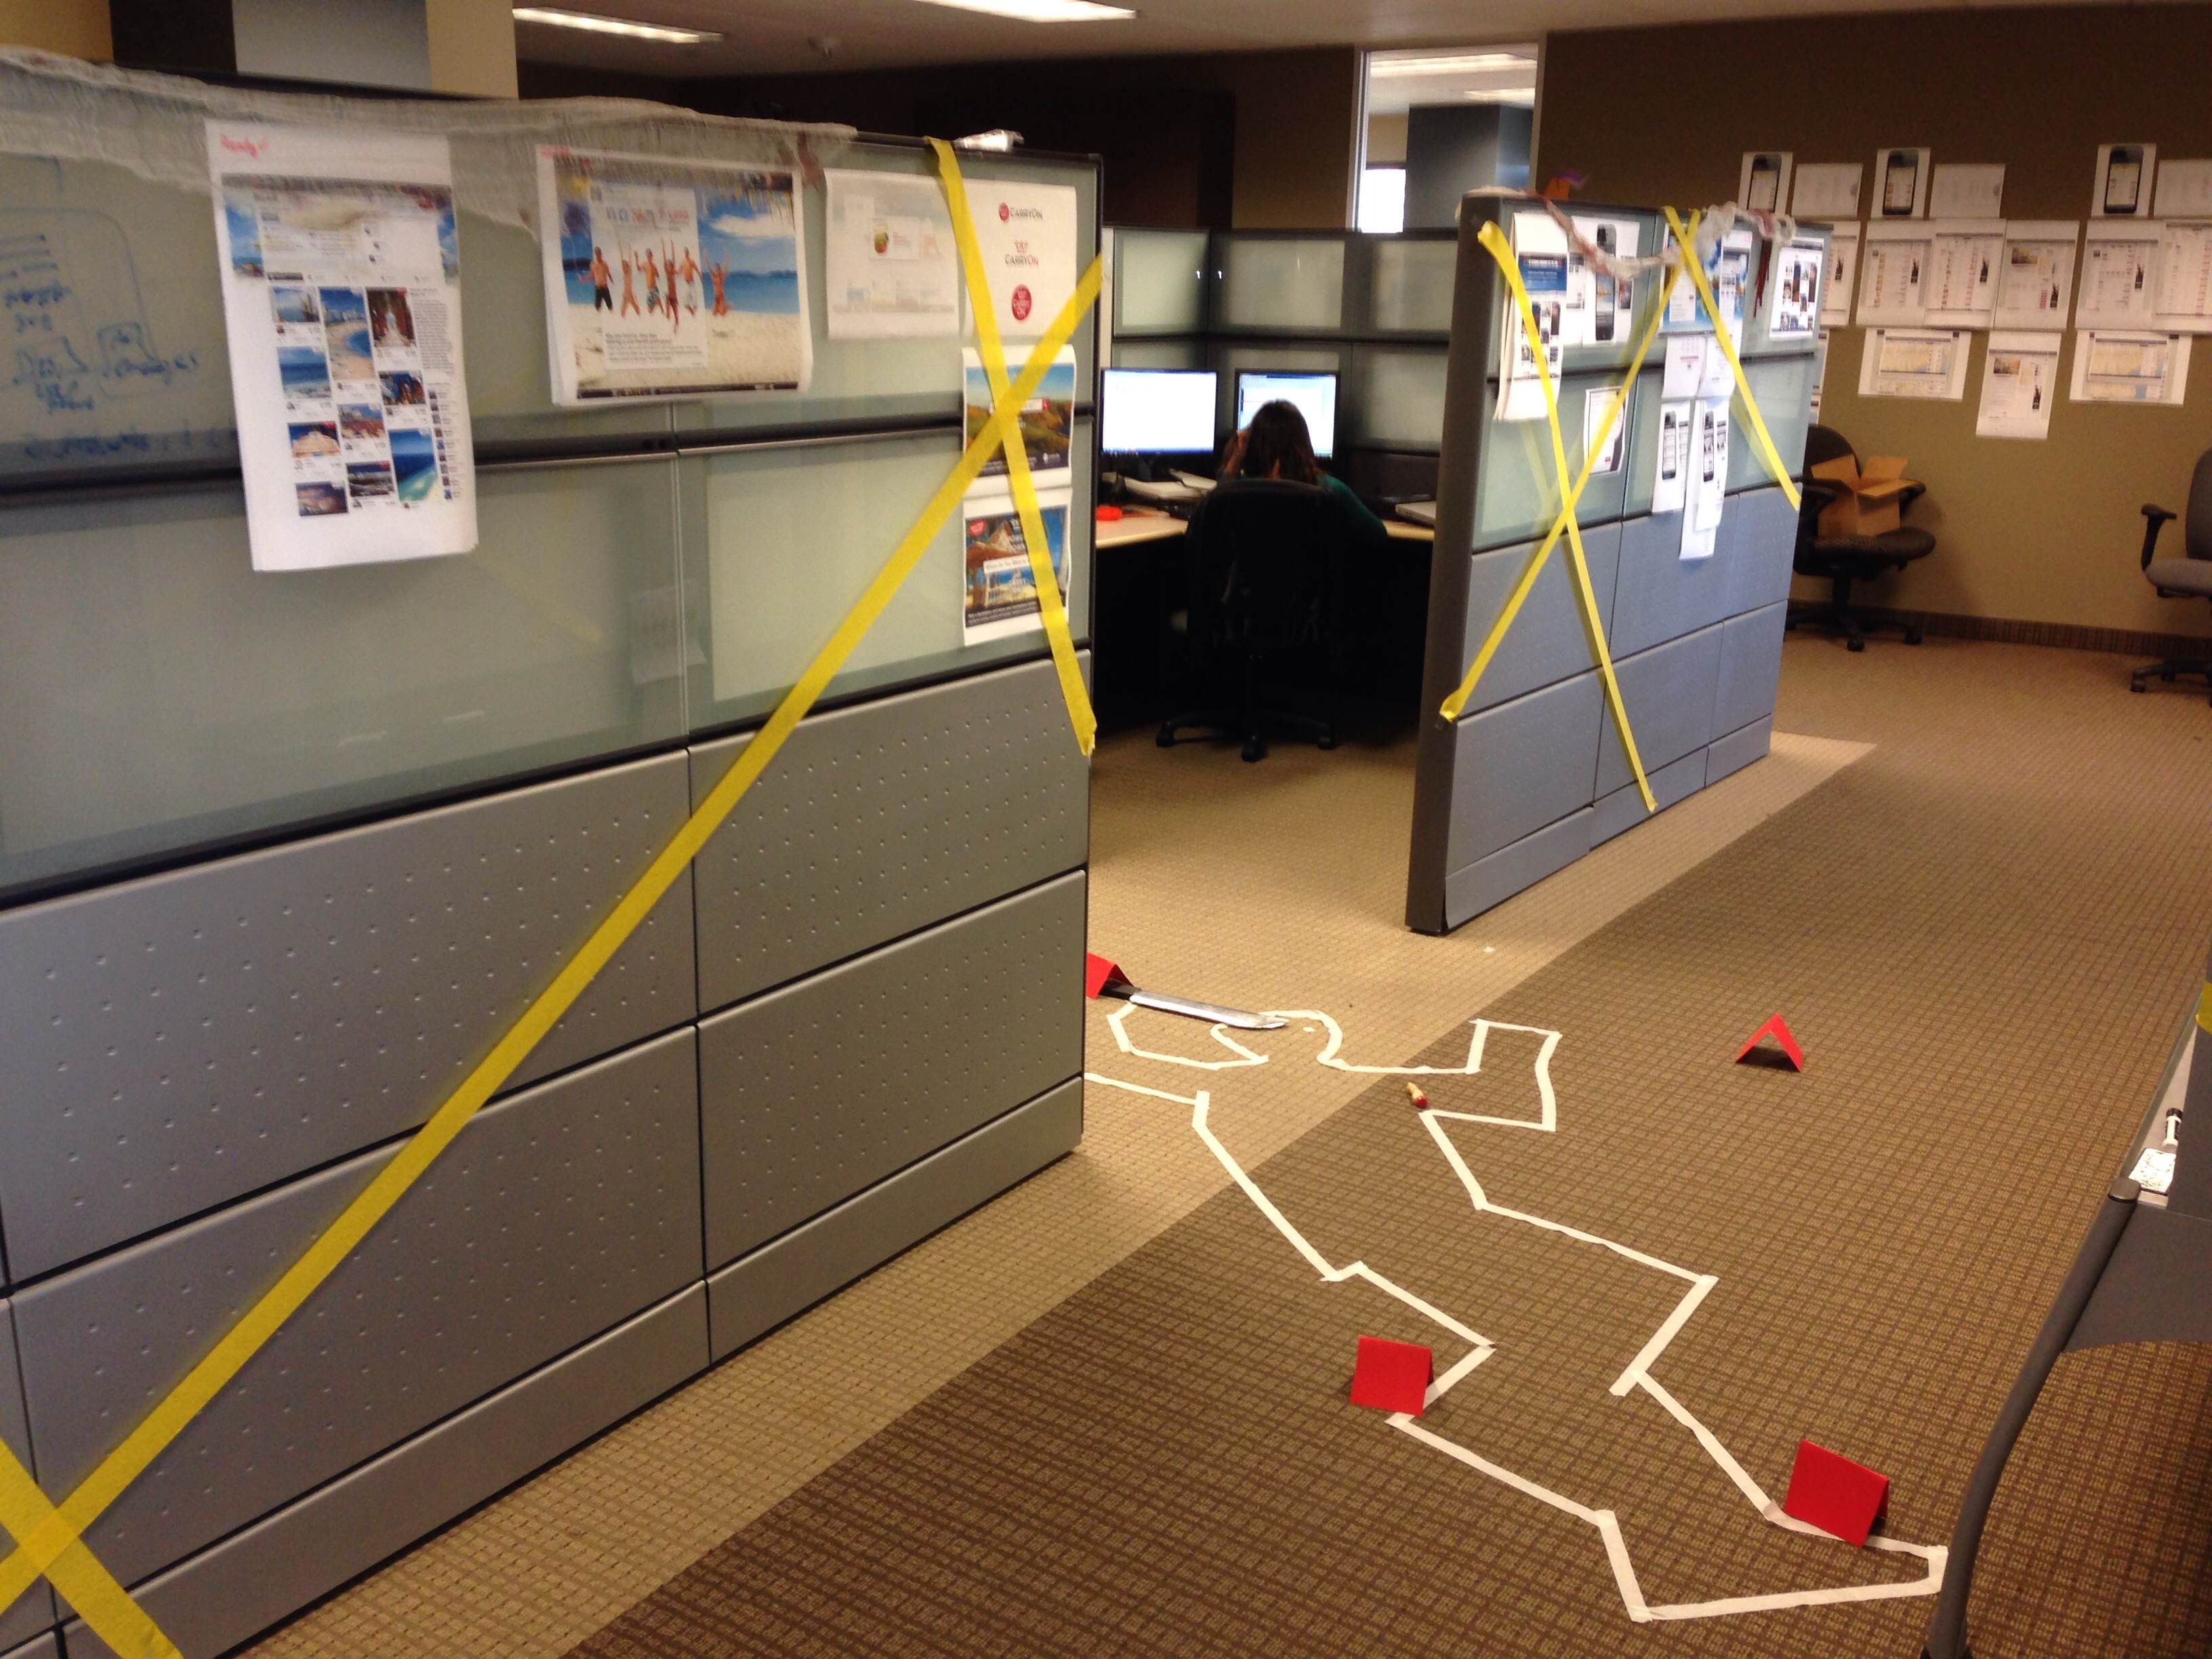 office ideas for halloween. Cube Decorating Contest In The Office. Happy Halloween! Crime Scene Office Ideas For Halloween K